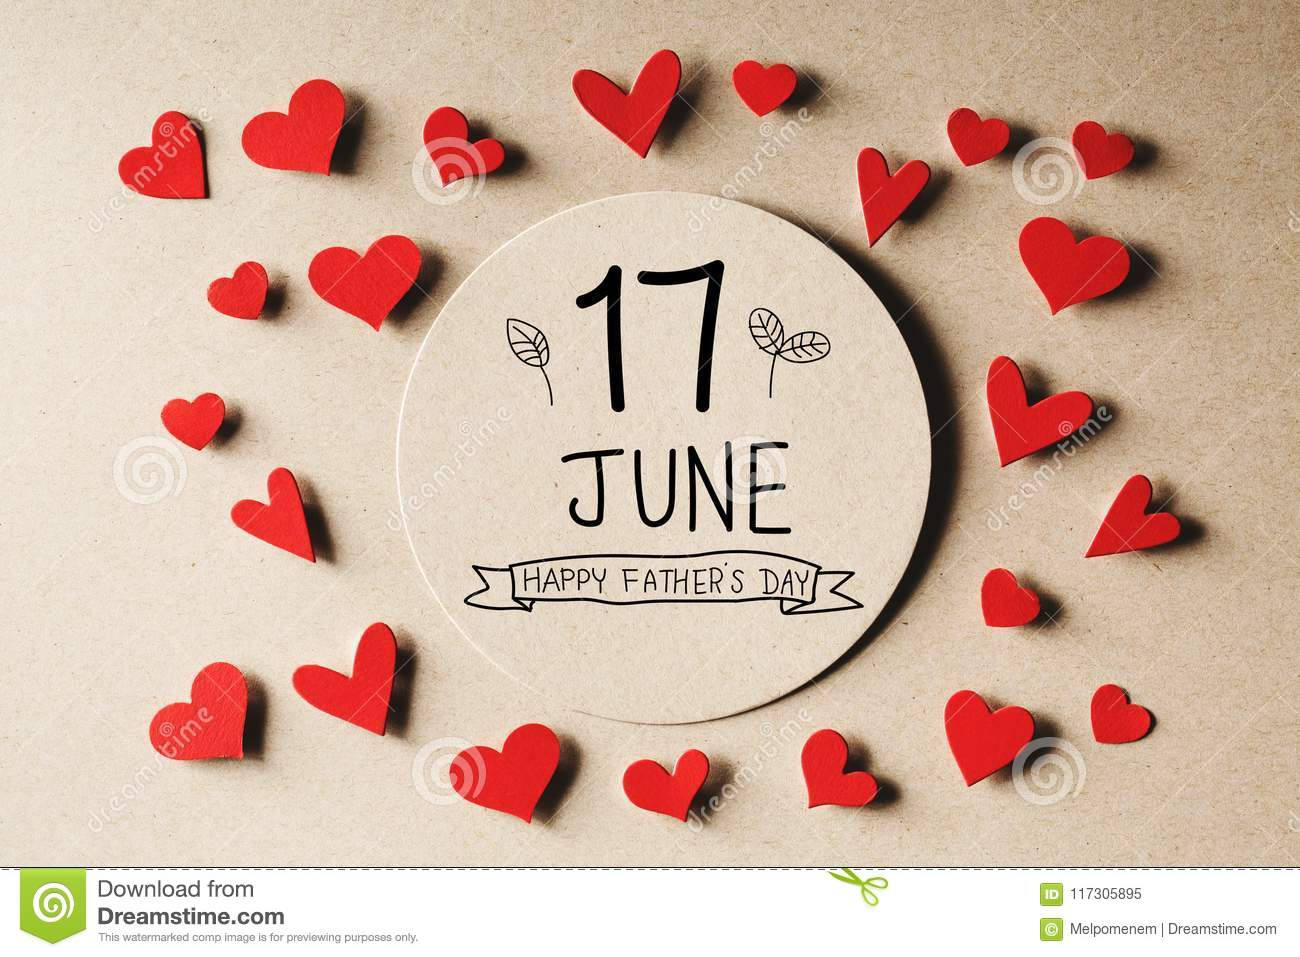 17 June Happy Fathers Day message with small hearts